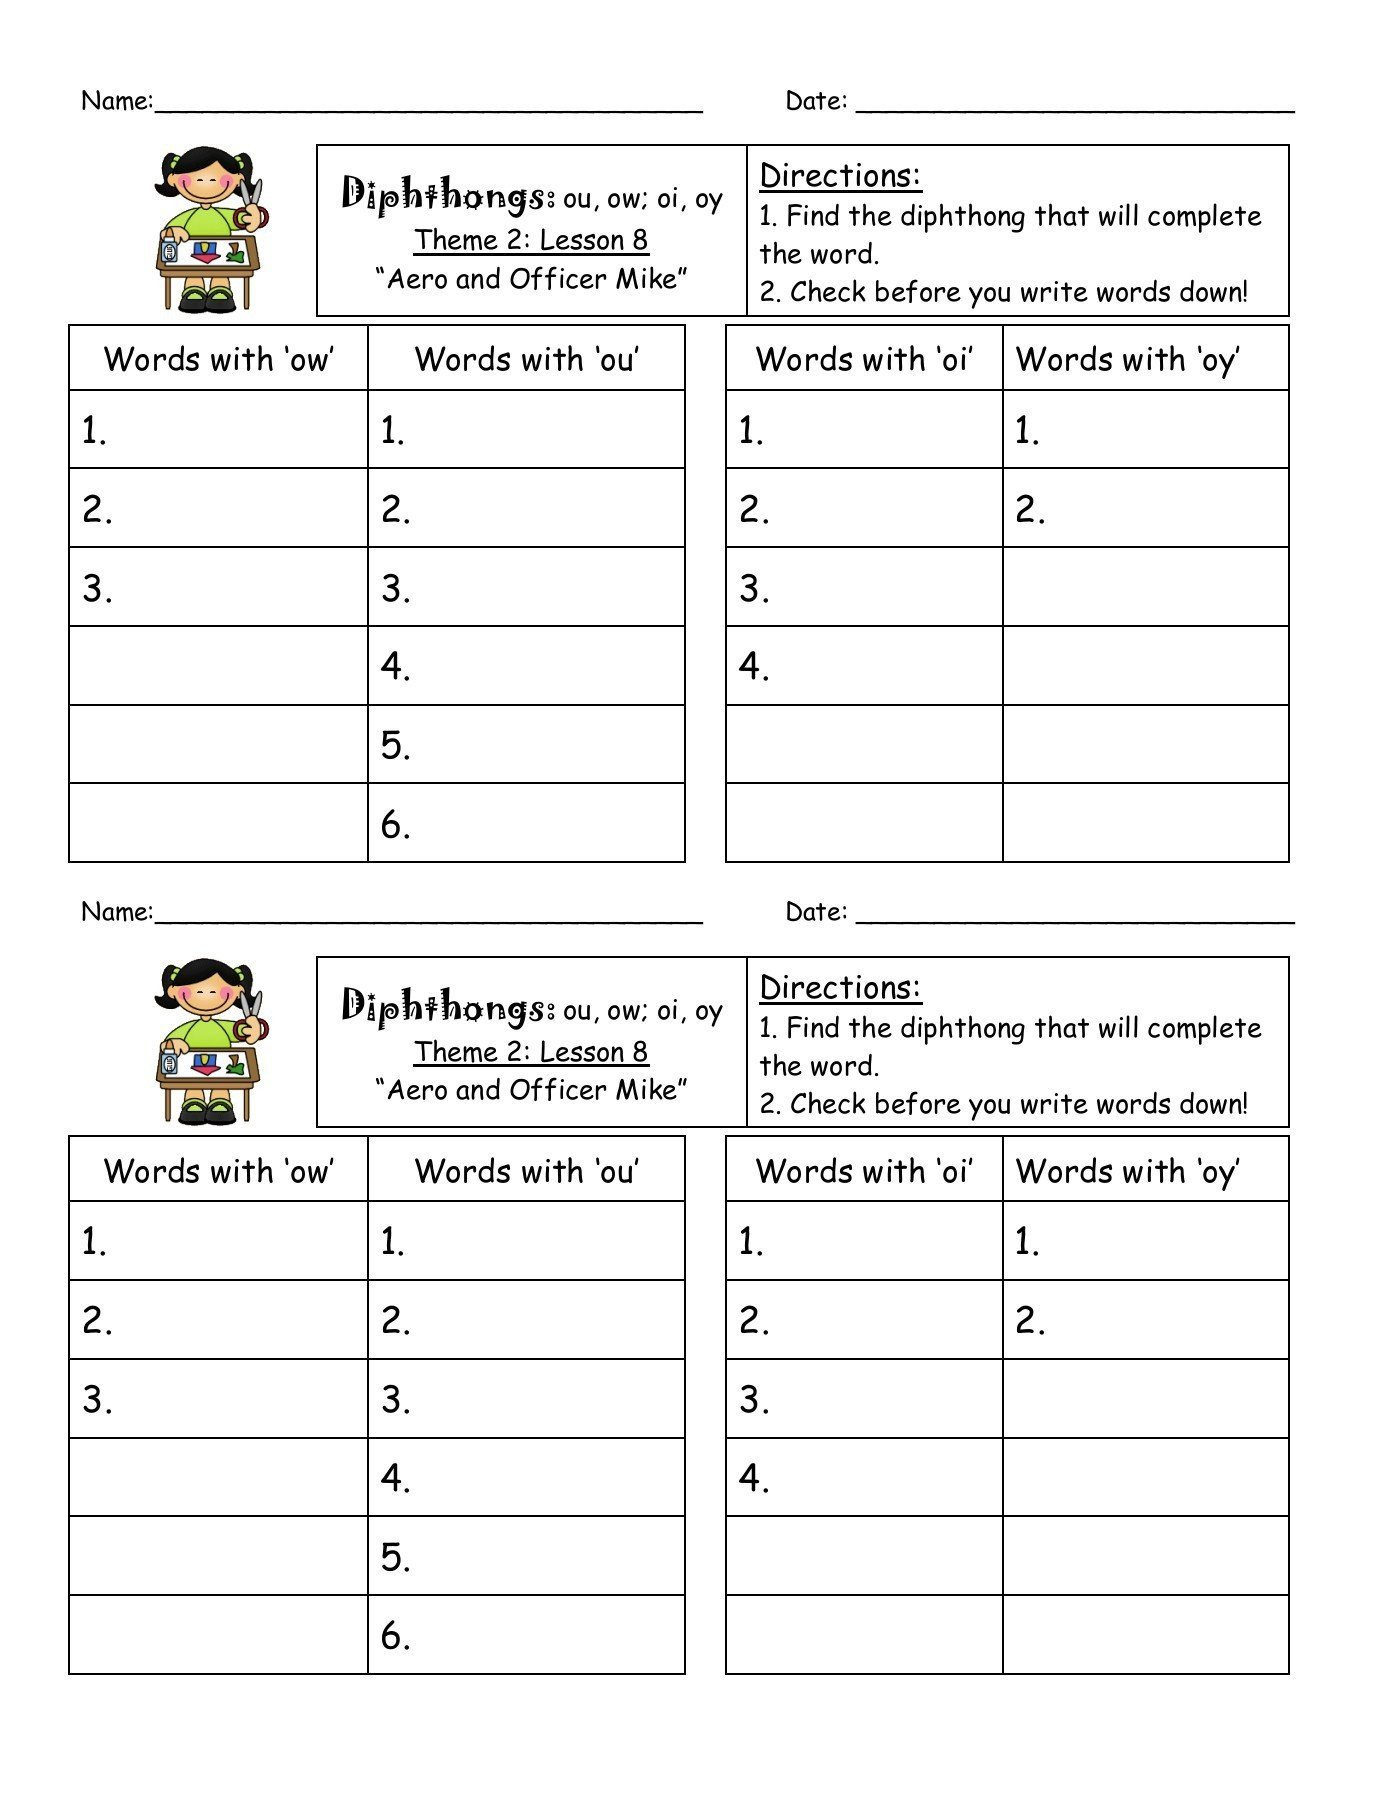 Oi And Oy Phonics Worksheets Printable Worksheets And Activities For Teachers Parents Tutors And Homeschool Families